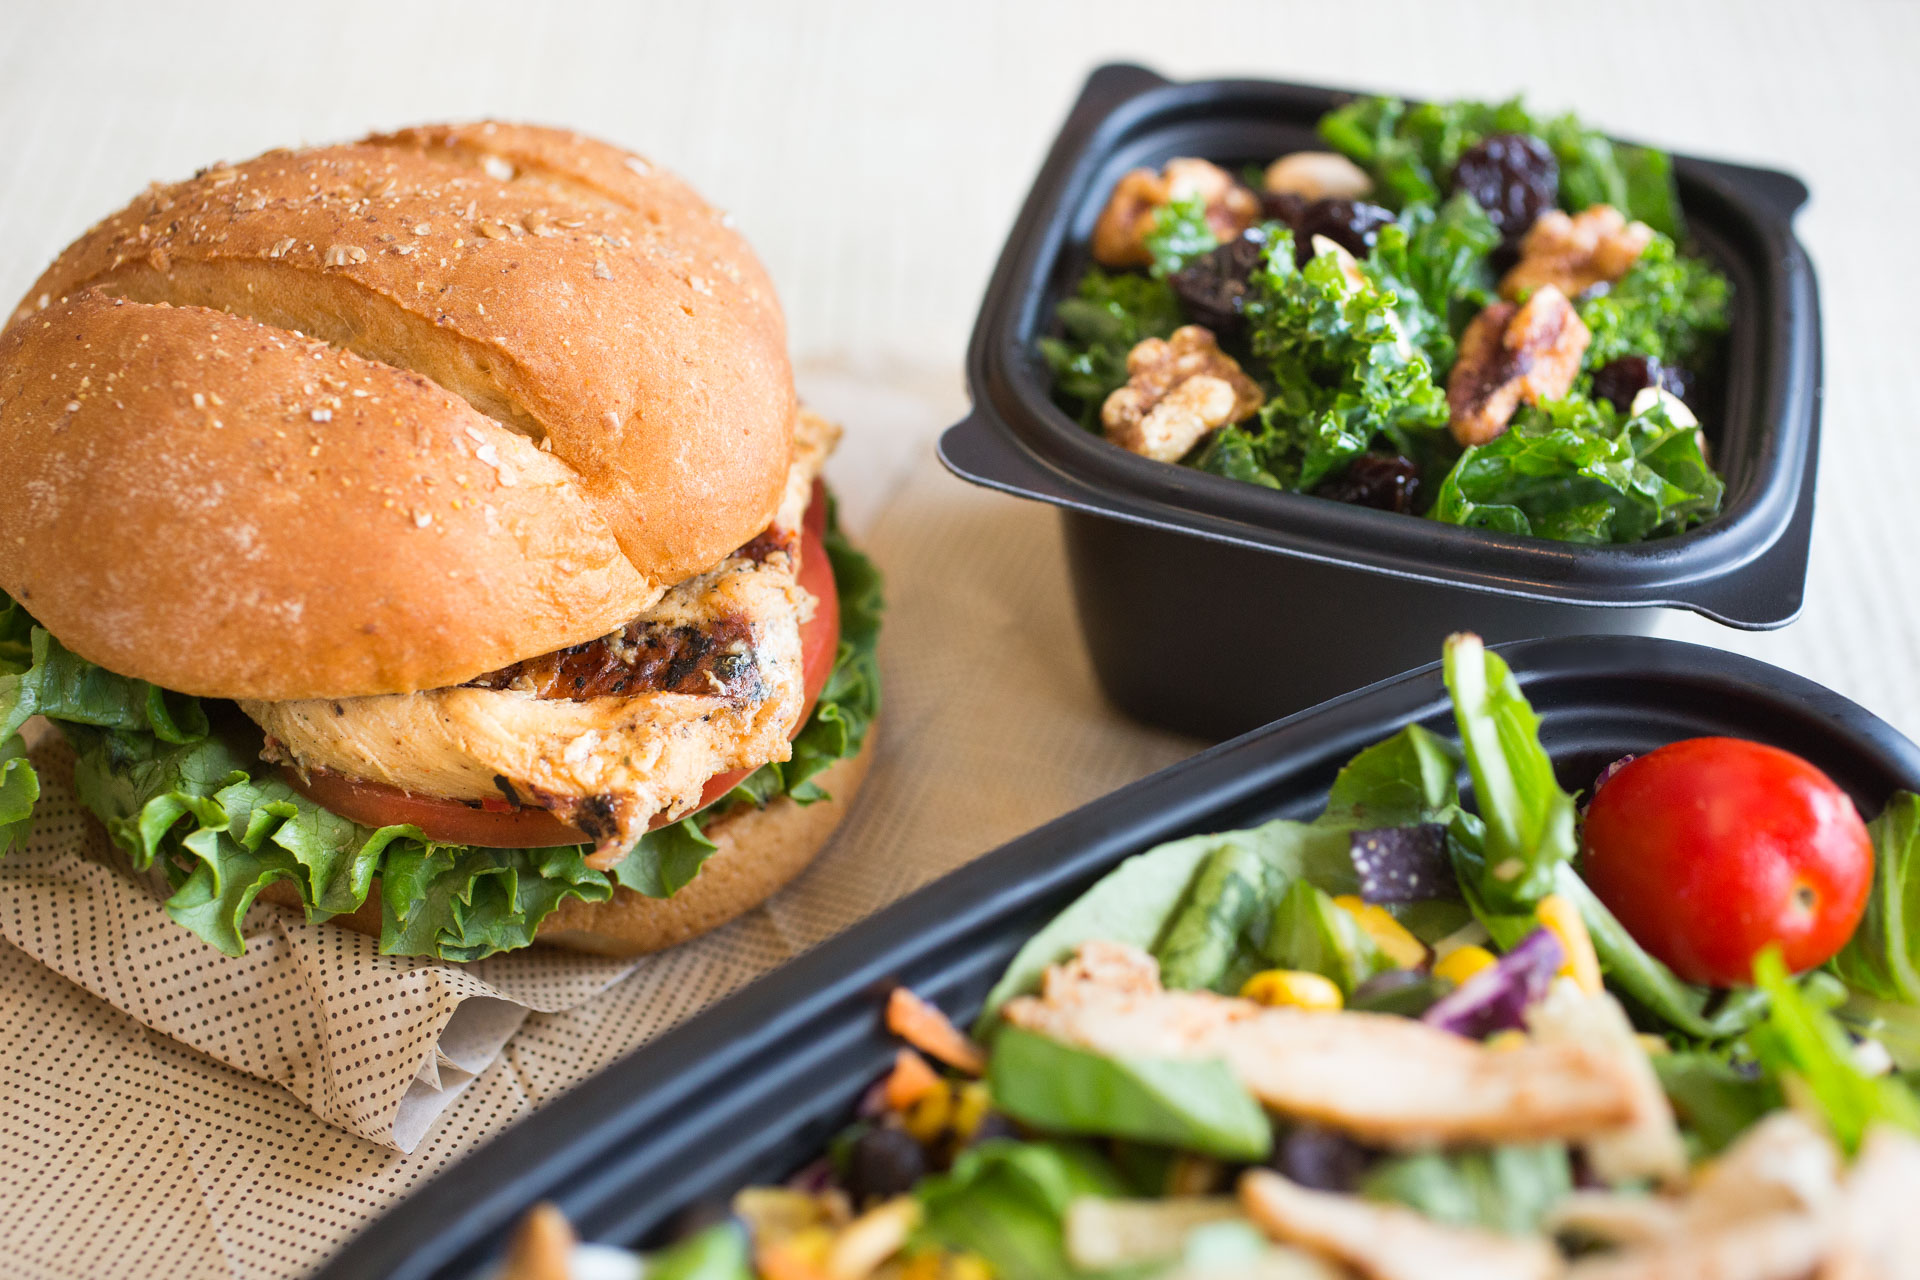 Chick-fil-A healthy products lineup - Grilled Chicken Sandwich and Superfood Side